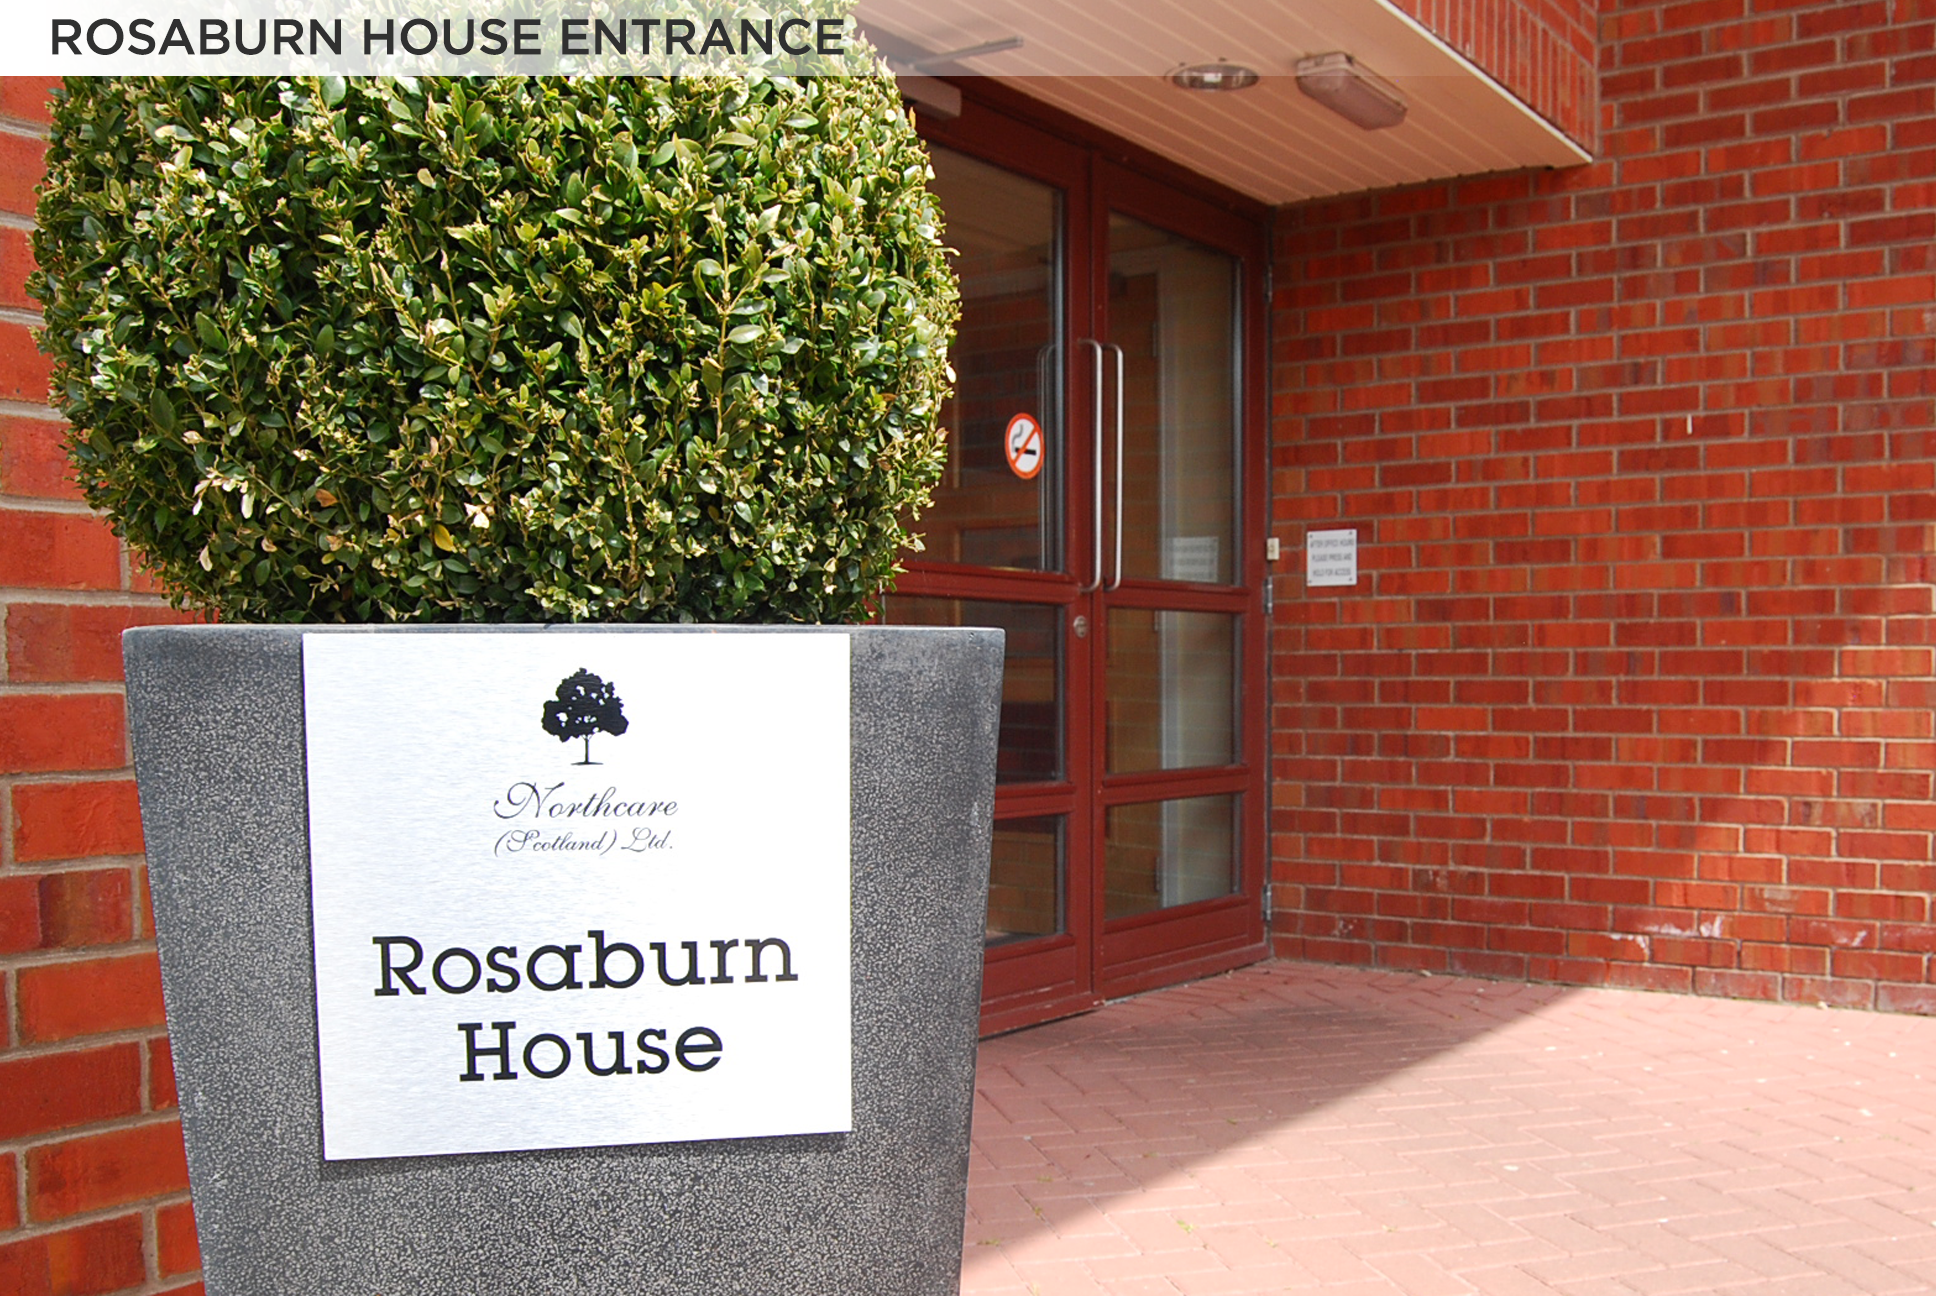 rosburn_house_entrance1_annotated